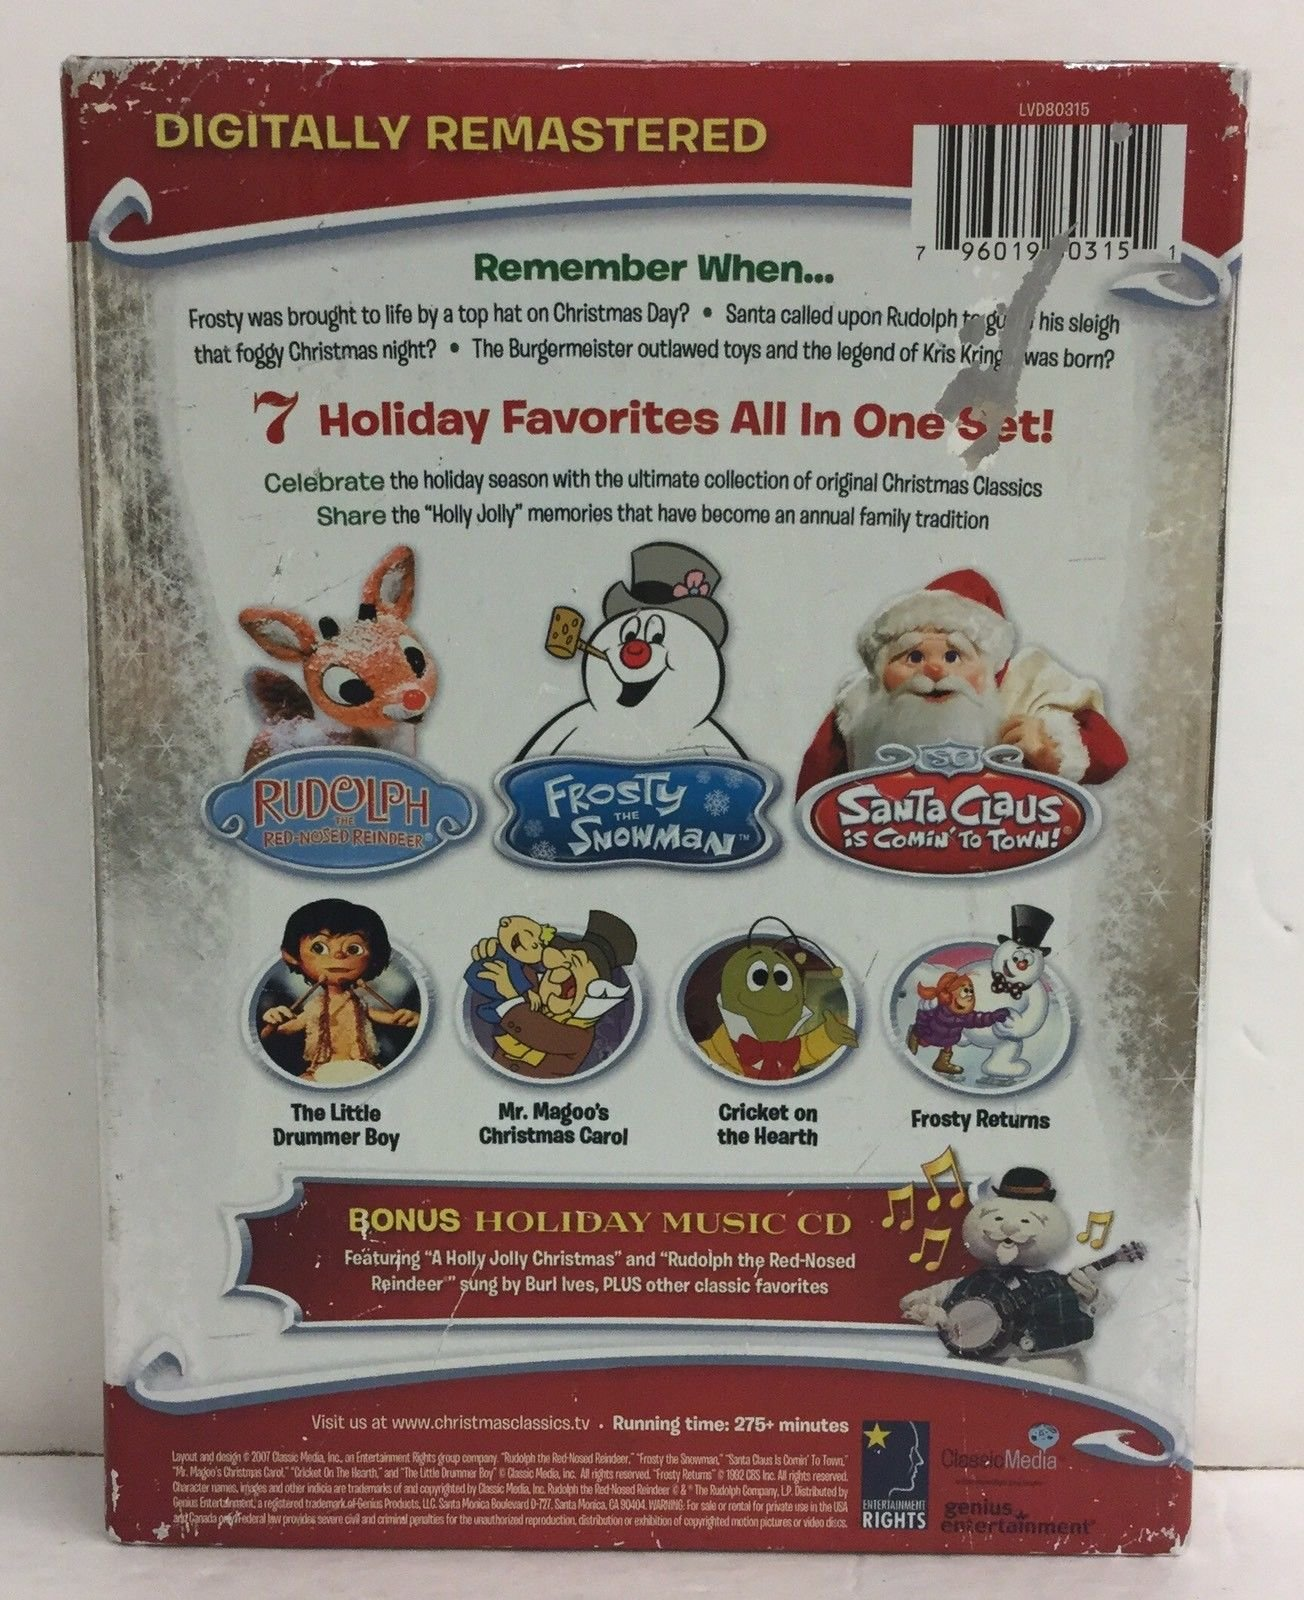 The Original Christmas TV Classics (Rudolph the Red-Nosed Reindeer/Rudolph Returns/Santa Claus is Comin' to Town/Frosty the Snowman/Frosty Returns/The Little Drummer Boy/Mr. Magoo's Christmas Carol) by Elm Products Inc.